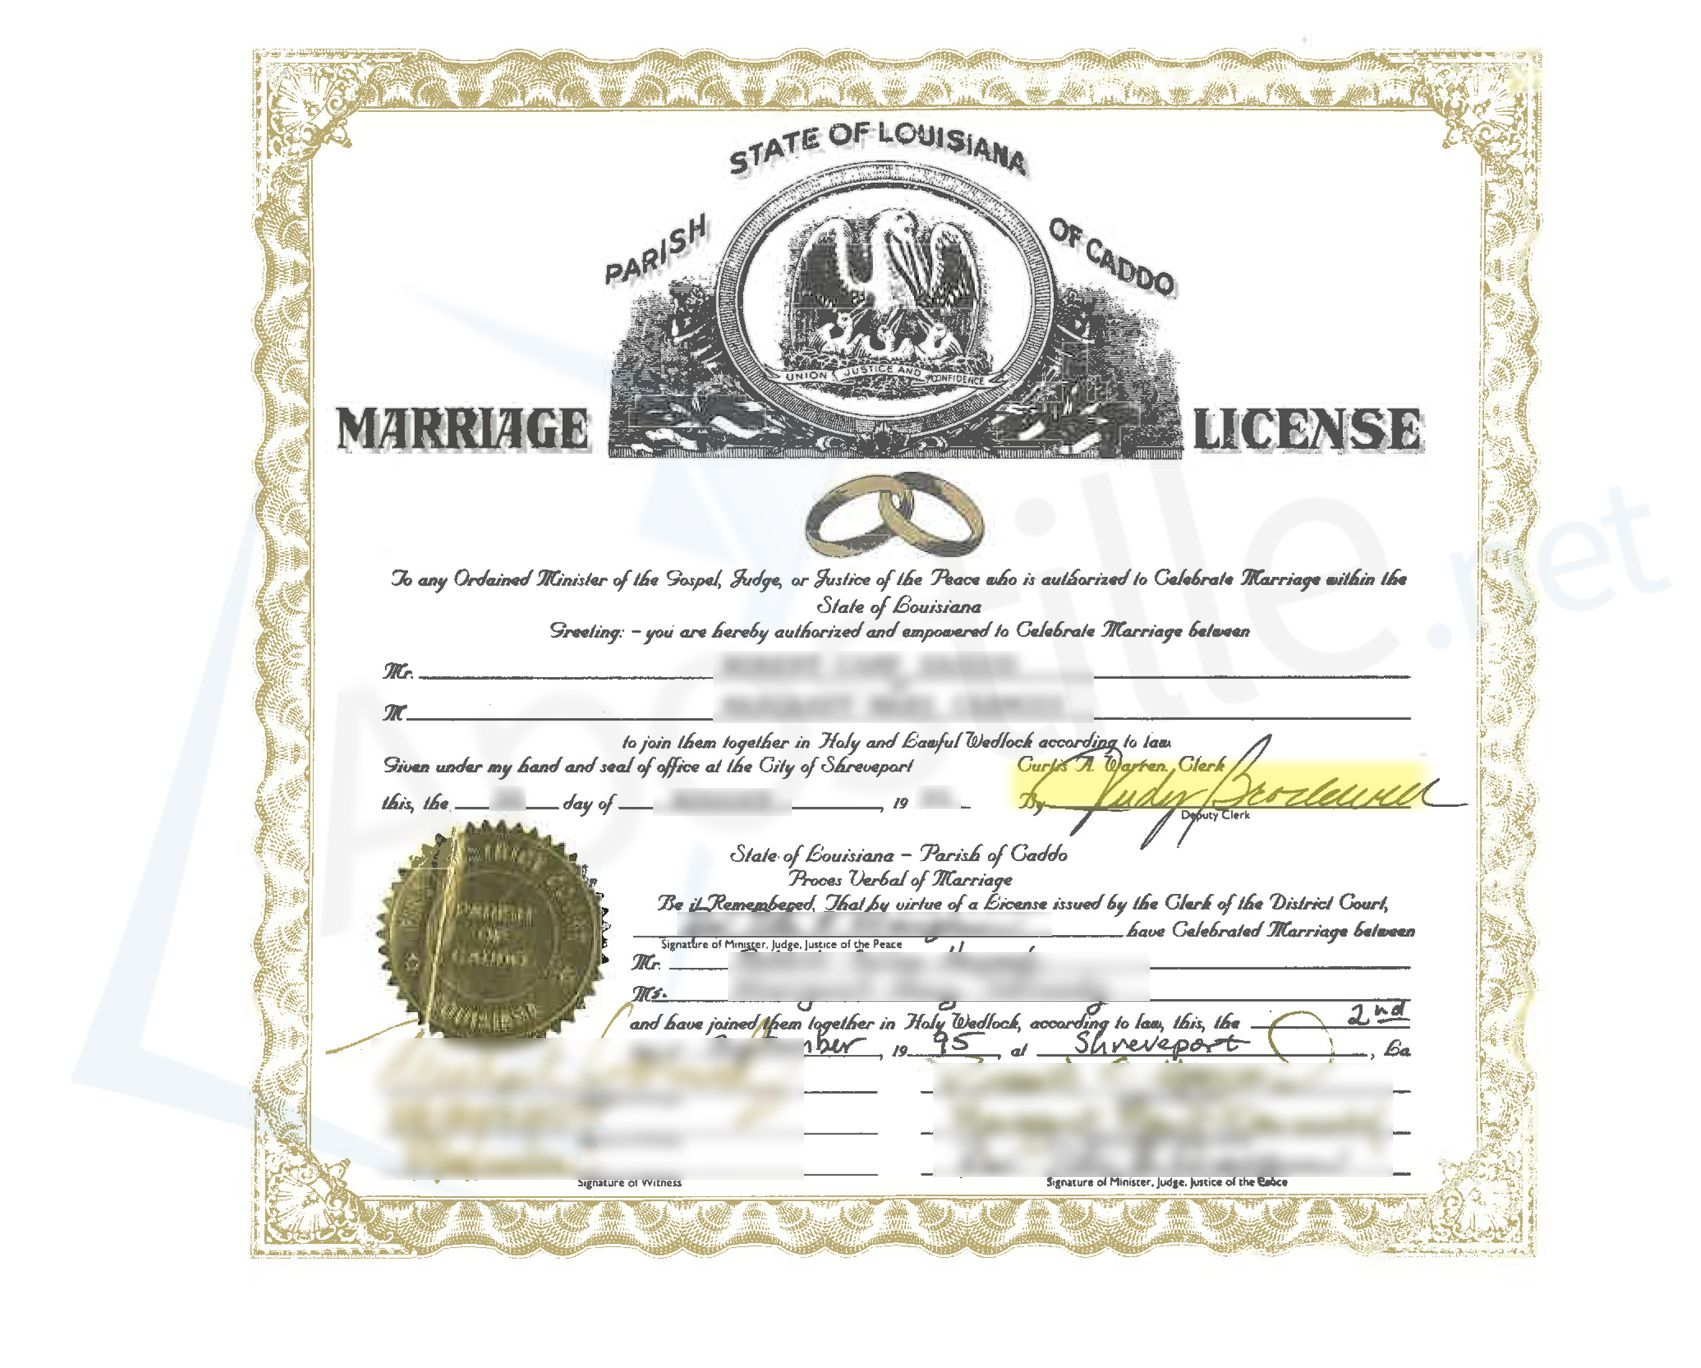 Parish of caddo state of louisiana marriage license issued by the parish of caddo state of louisiana marriage license issued by the clerk of the district court xflitez Images